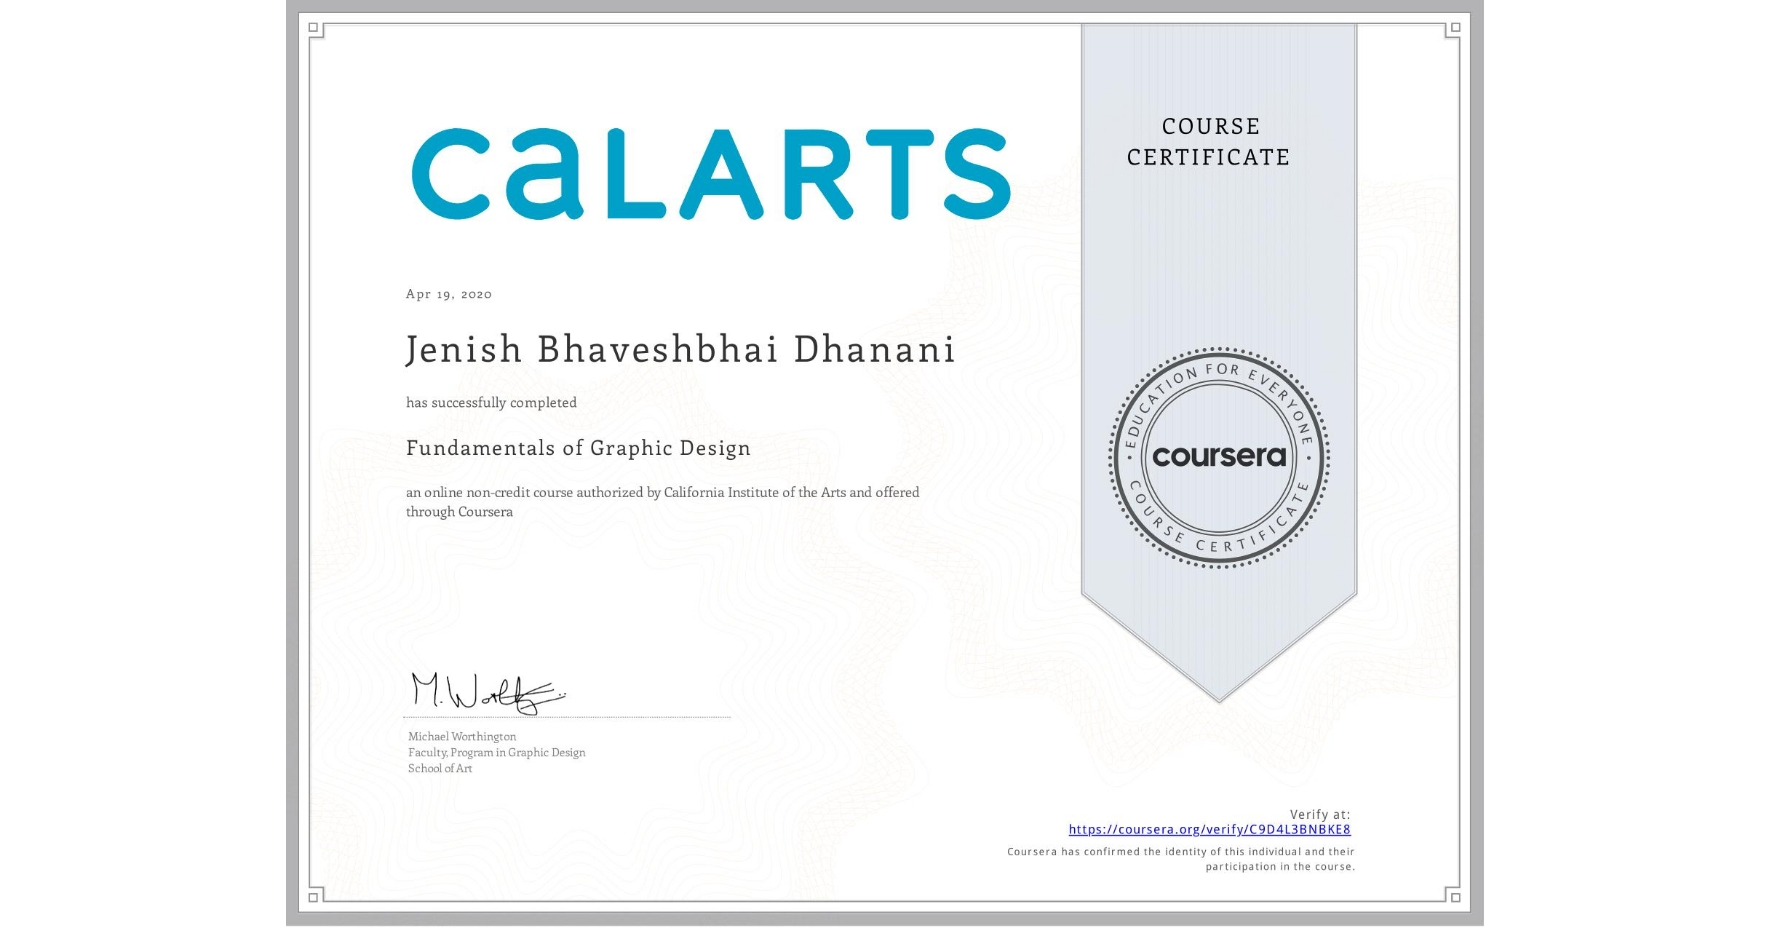 View certificate for Jenish Bhaveshbhai Dhanani, Fundamentals of Graphic Design, an online non-credit course authorized by California Institute of the Arts and offered through Coursera